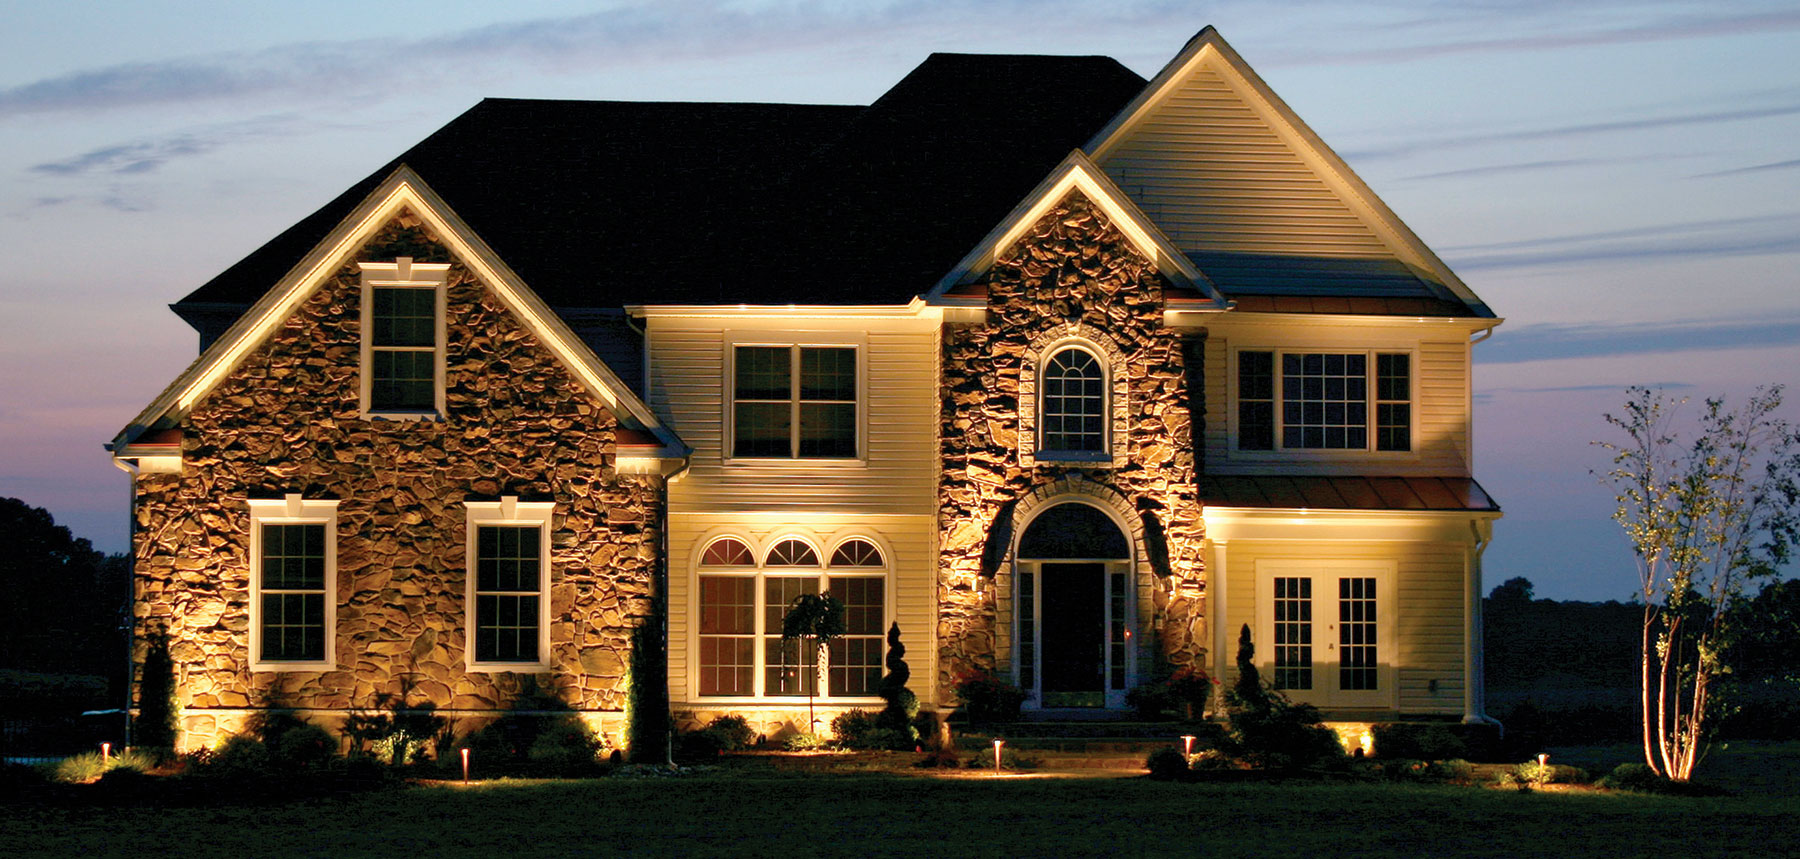 easy outdoor house lighting design. Outdoor Lighting is a Top Consideration for Homebuyers Blog  Perspectives